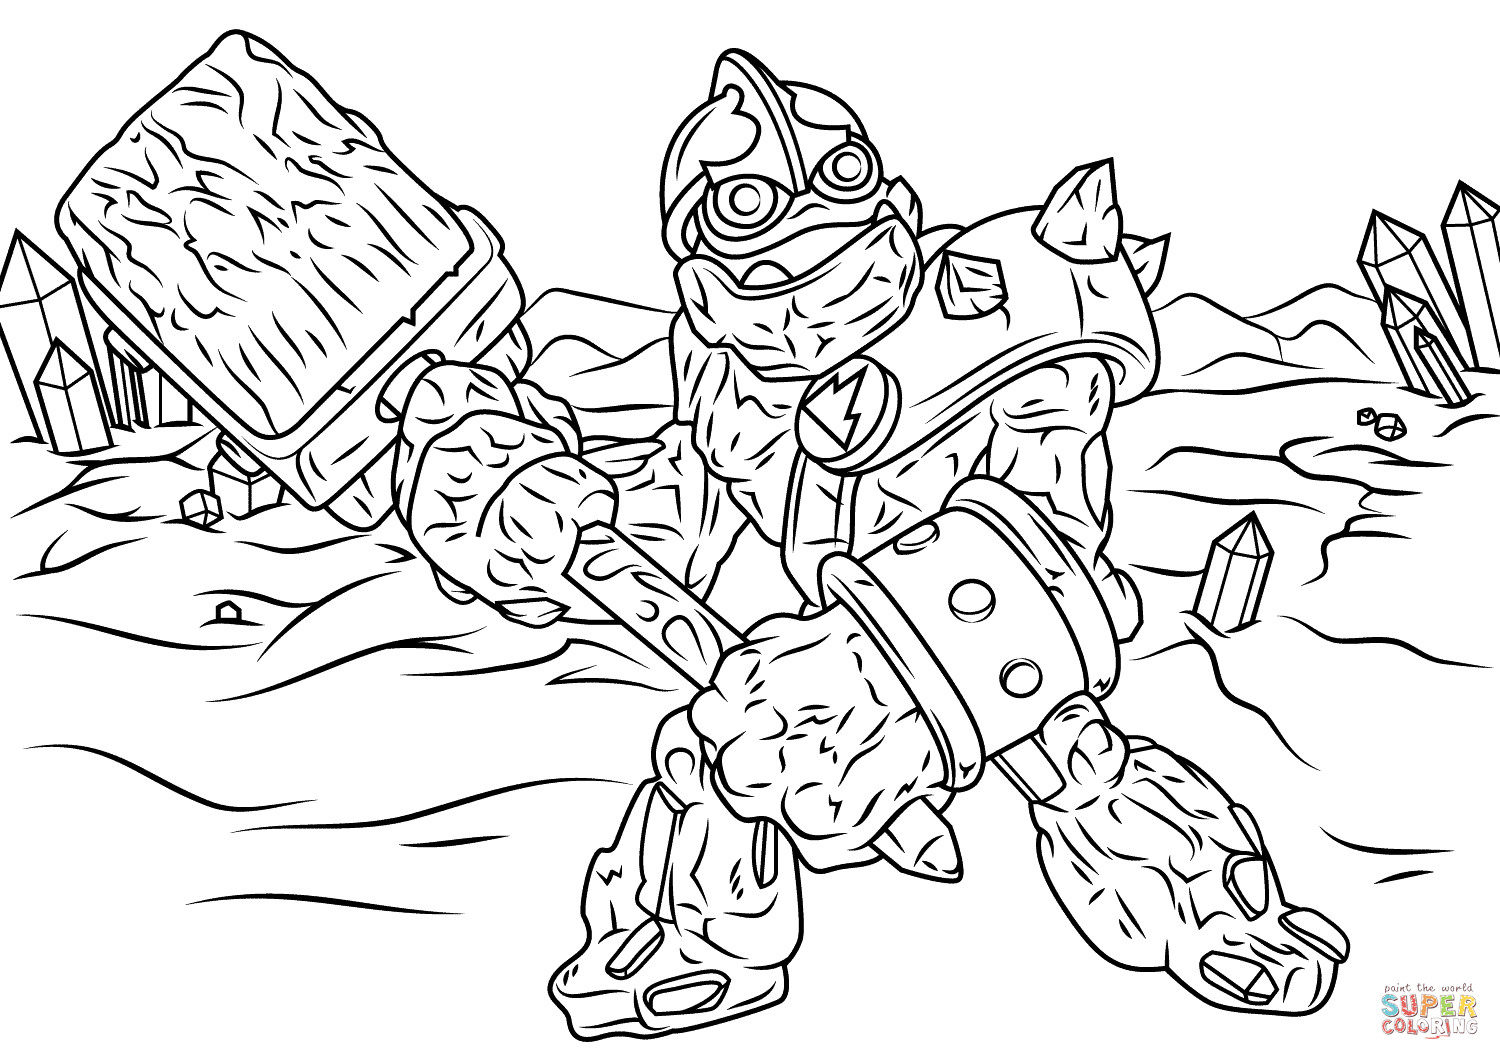 Best ideas about Skylanders Giants Printable Coloring Pages . Save or Pin Skylanders Giants Crusher coloring page Now.